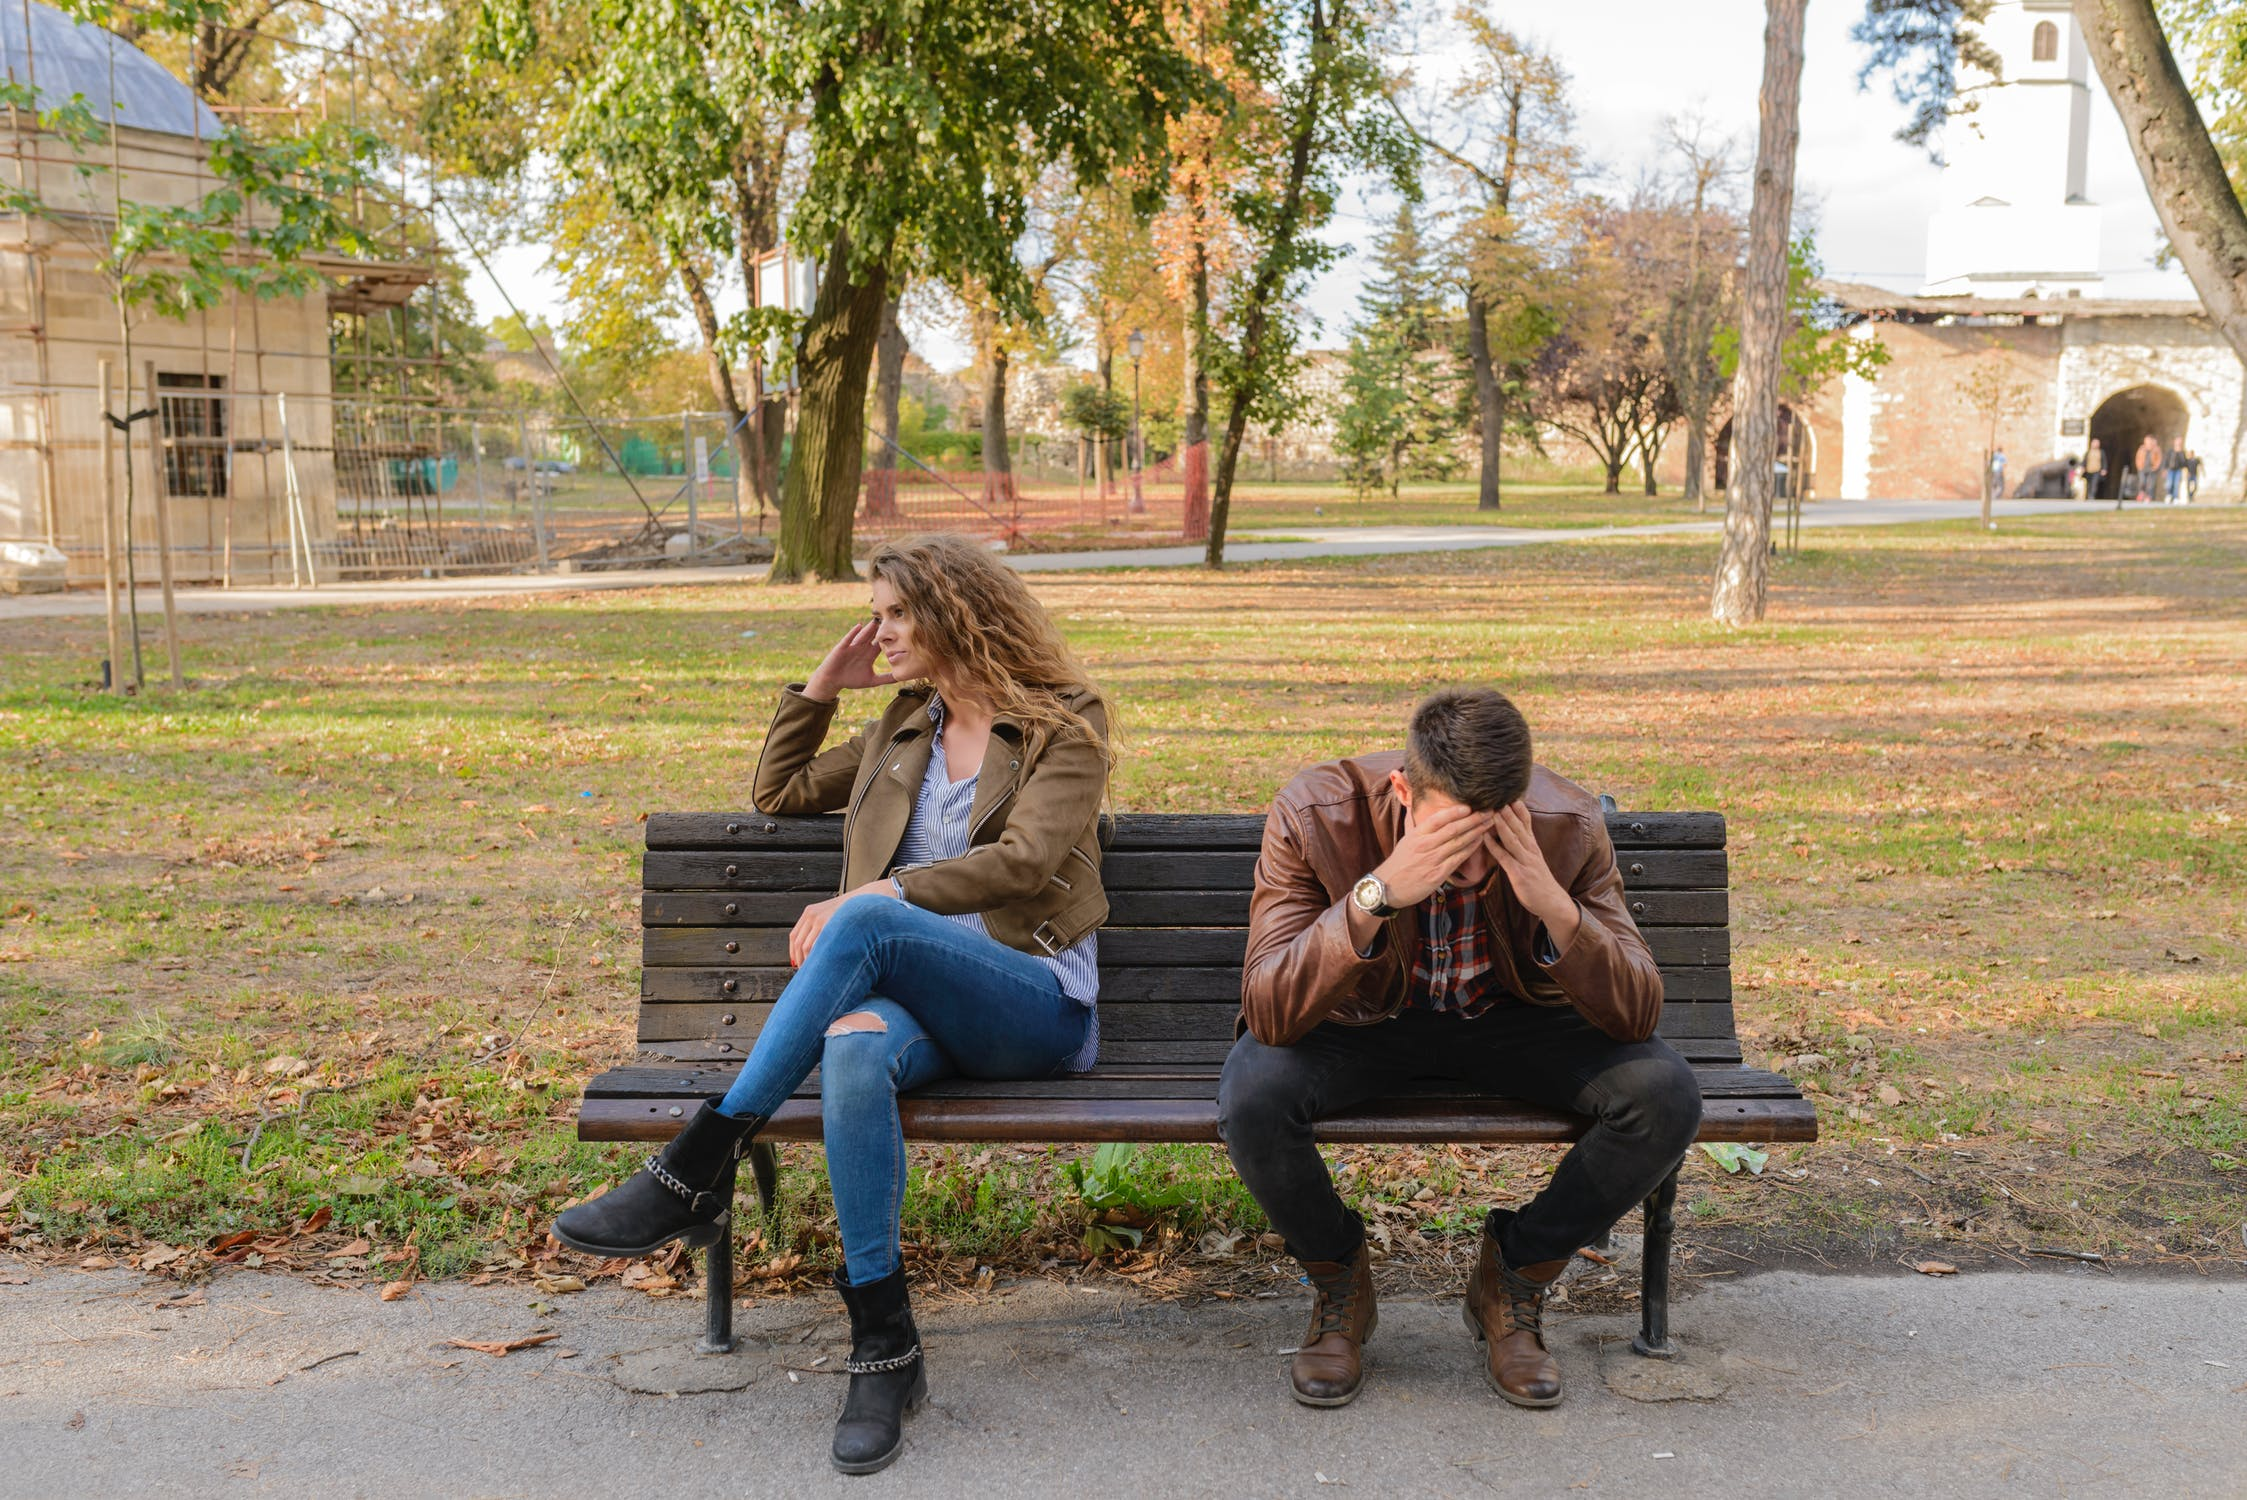 angry couple sitting on a park bench after an argument, quarrel, disagreements, breakups